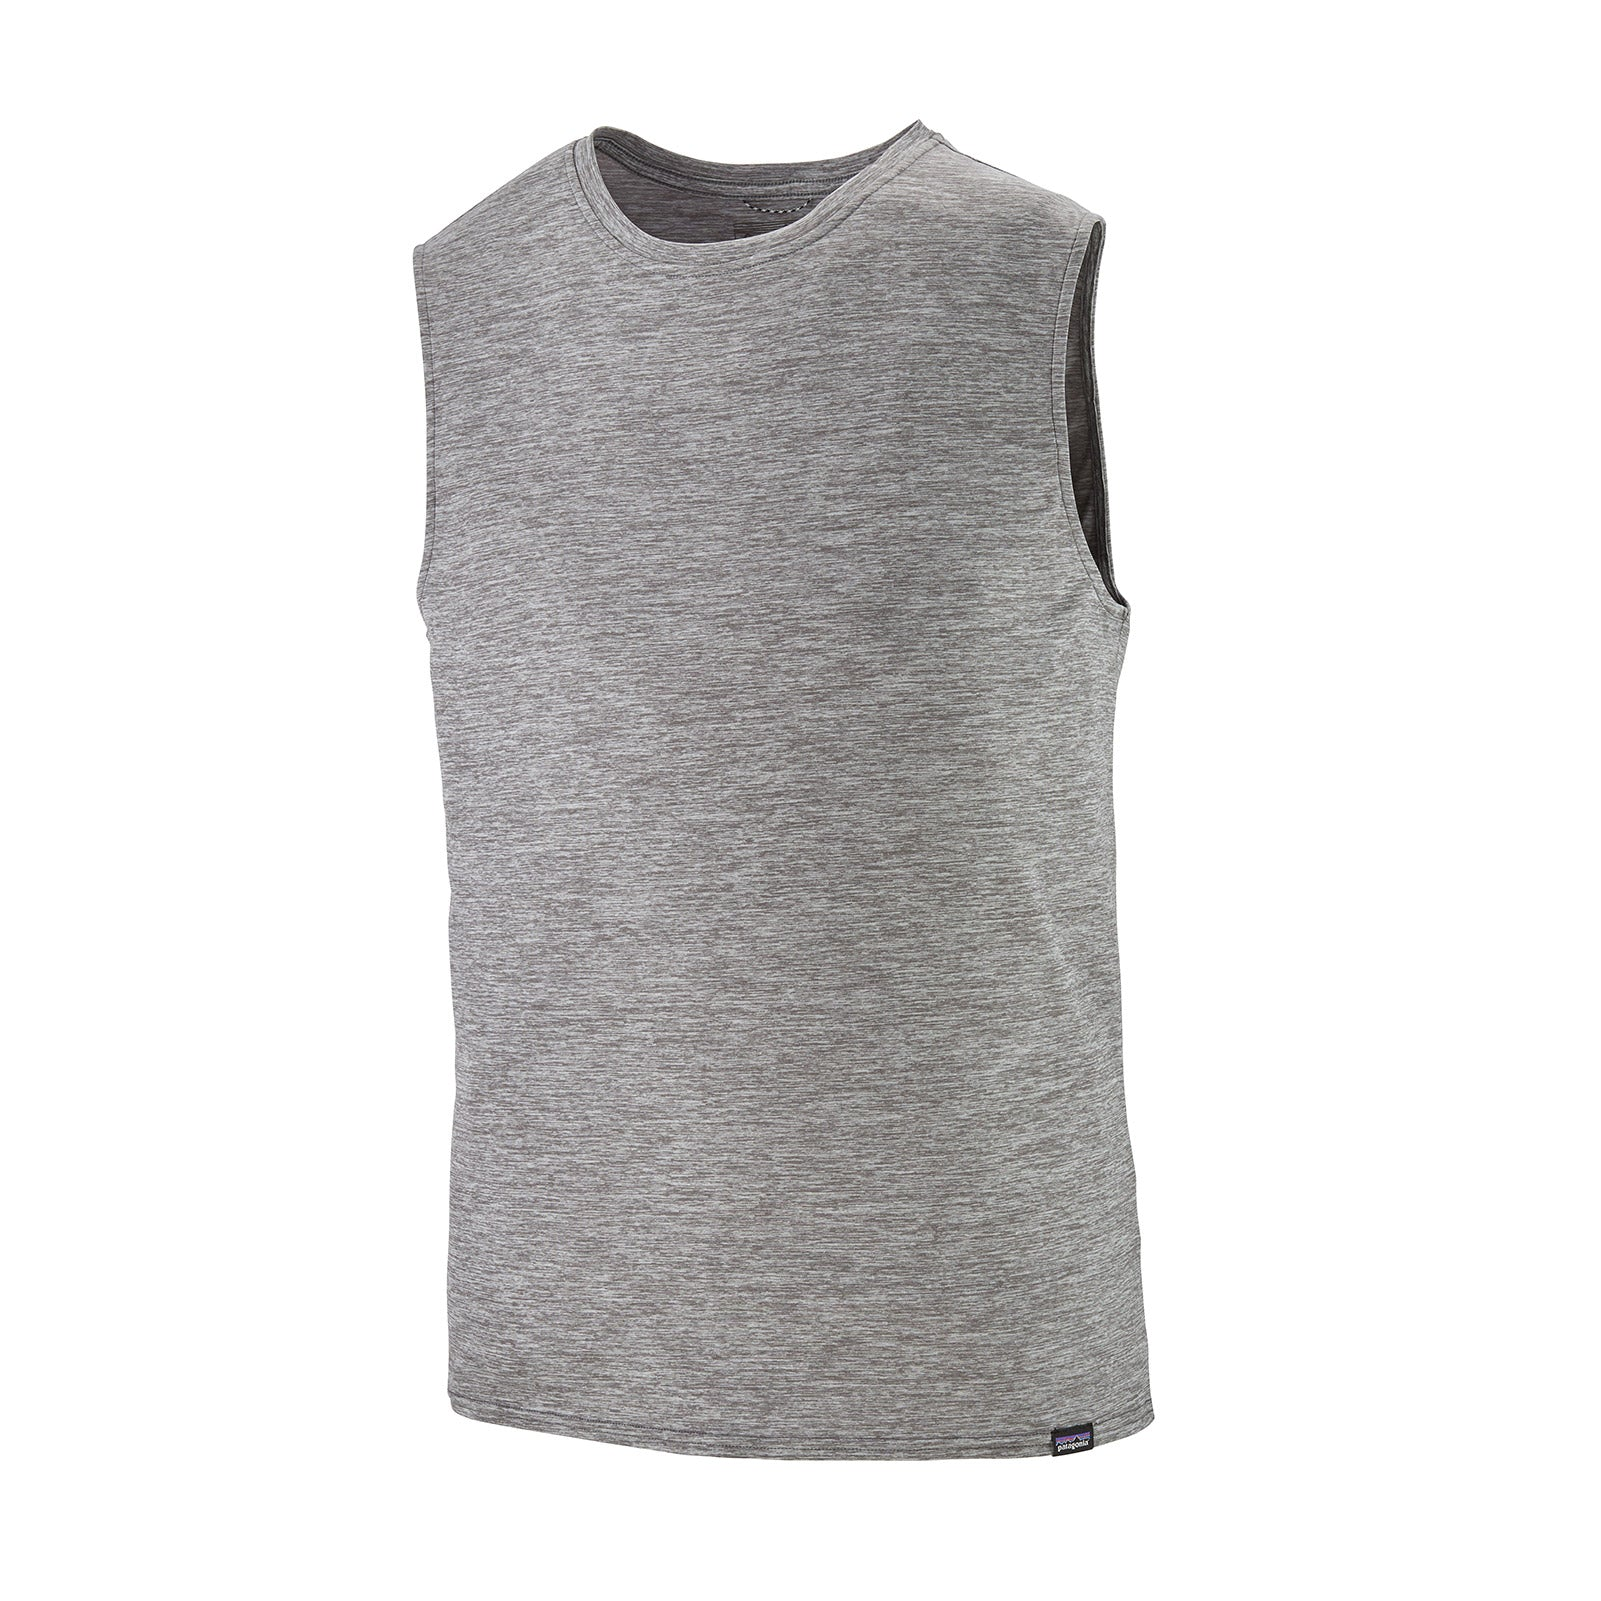 patagonia mens capilene cool daily tank in feather grey front view